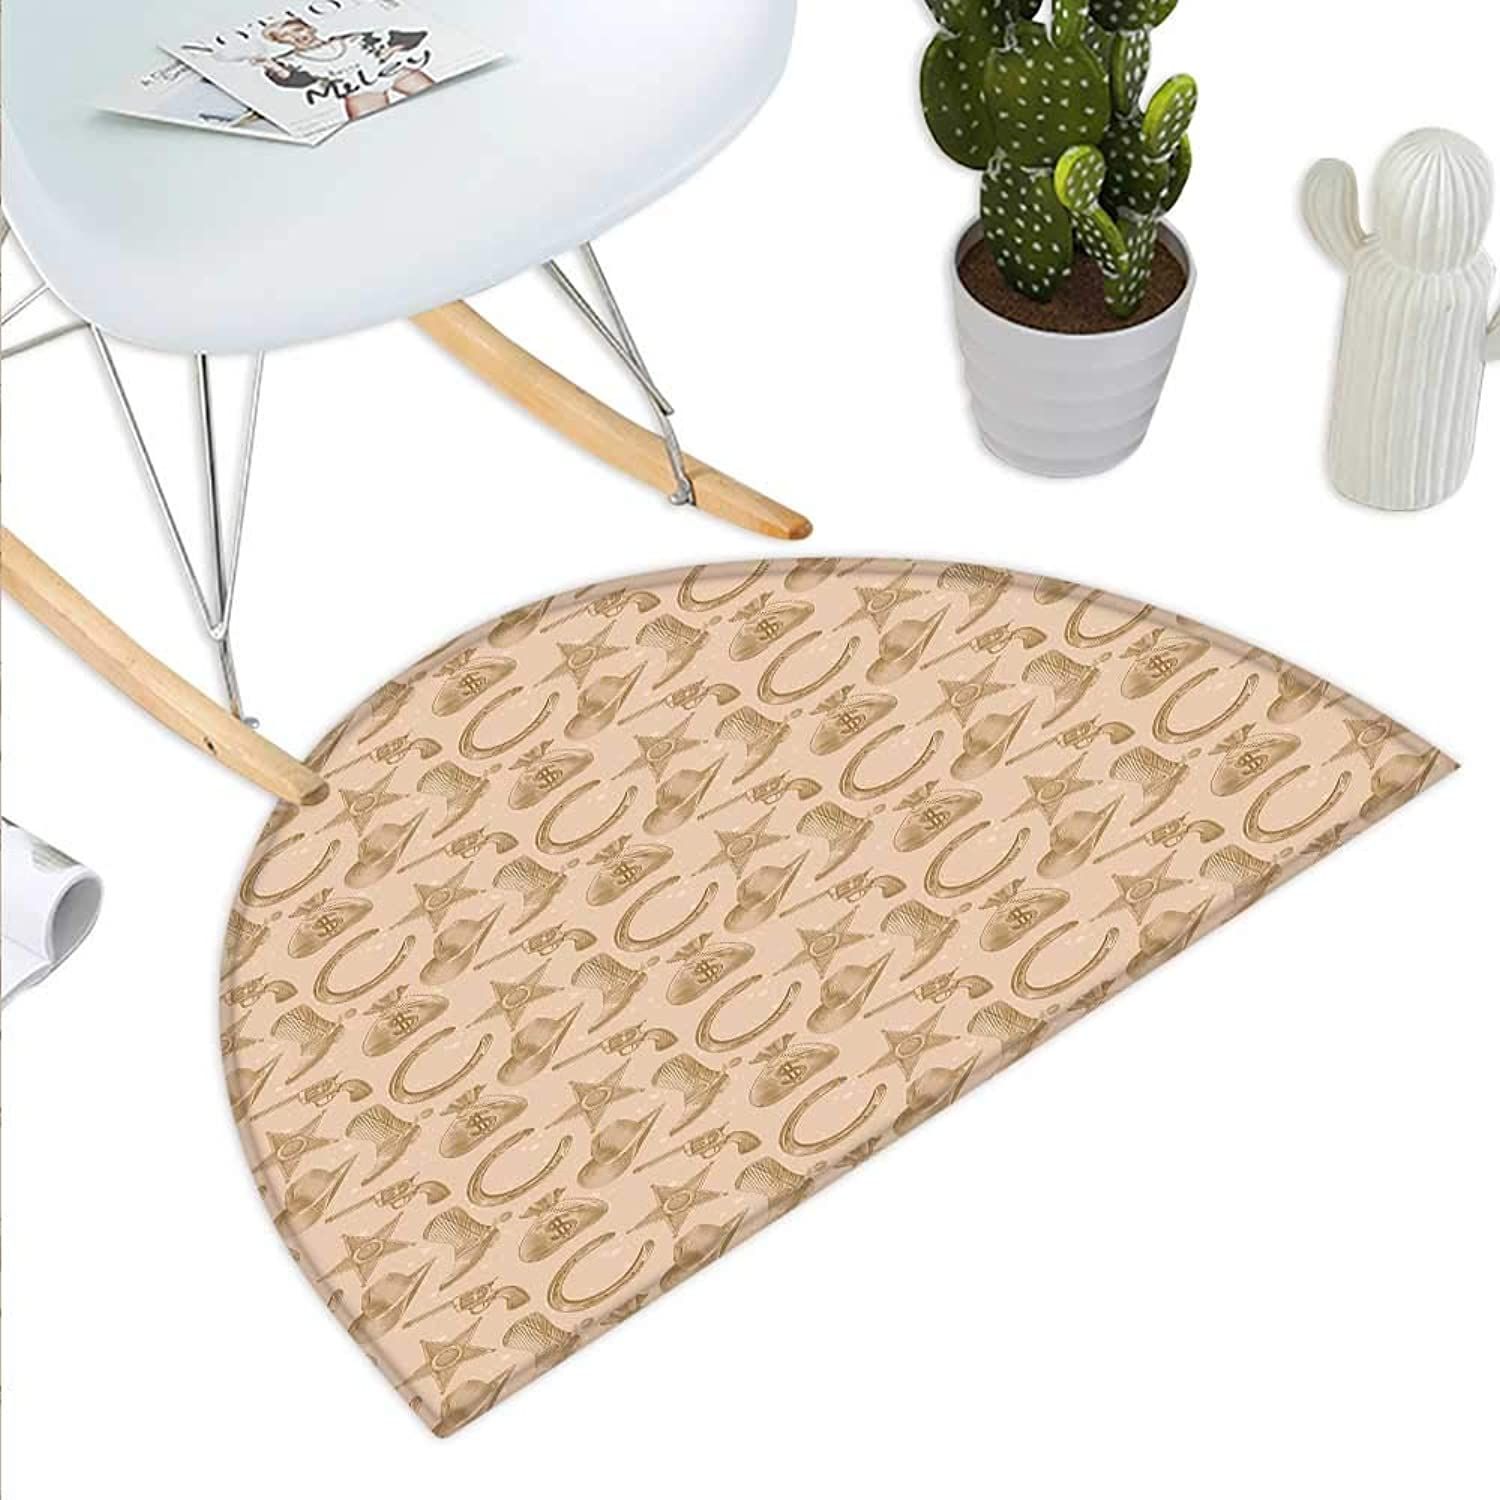 Western Semicircle Doormat Engraving Style Star Boot and Money Revolver Line Pattern Worn Out Dotted Backdrop Halfmoon doormats H 43.3  xD 64.9  Tan Brown